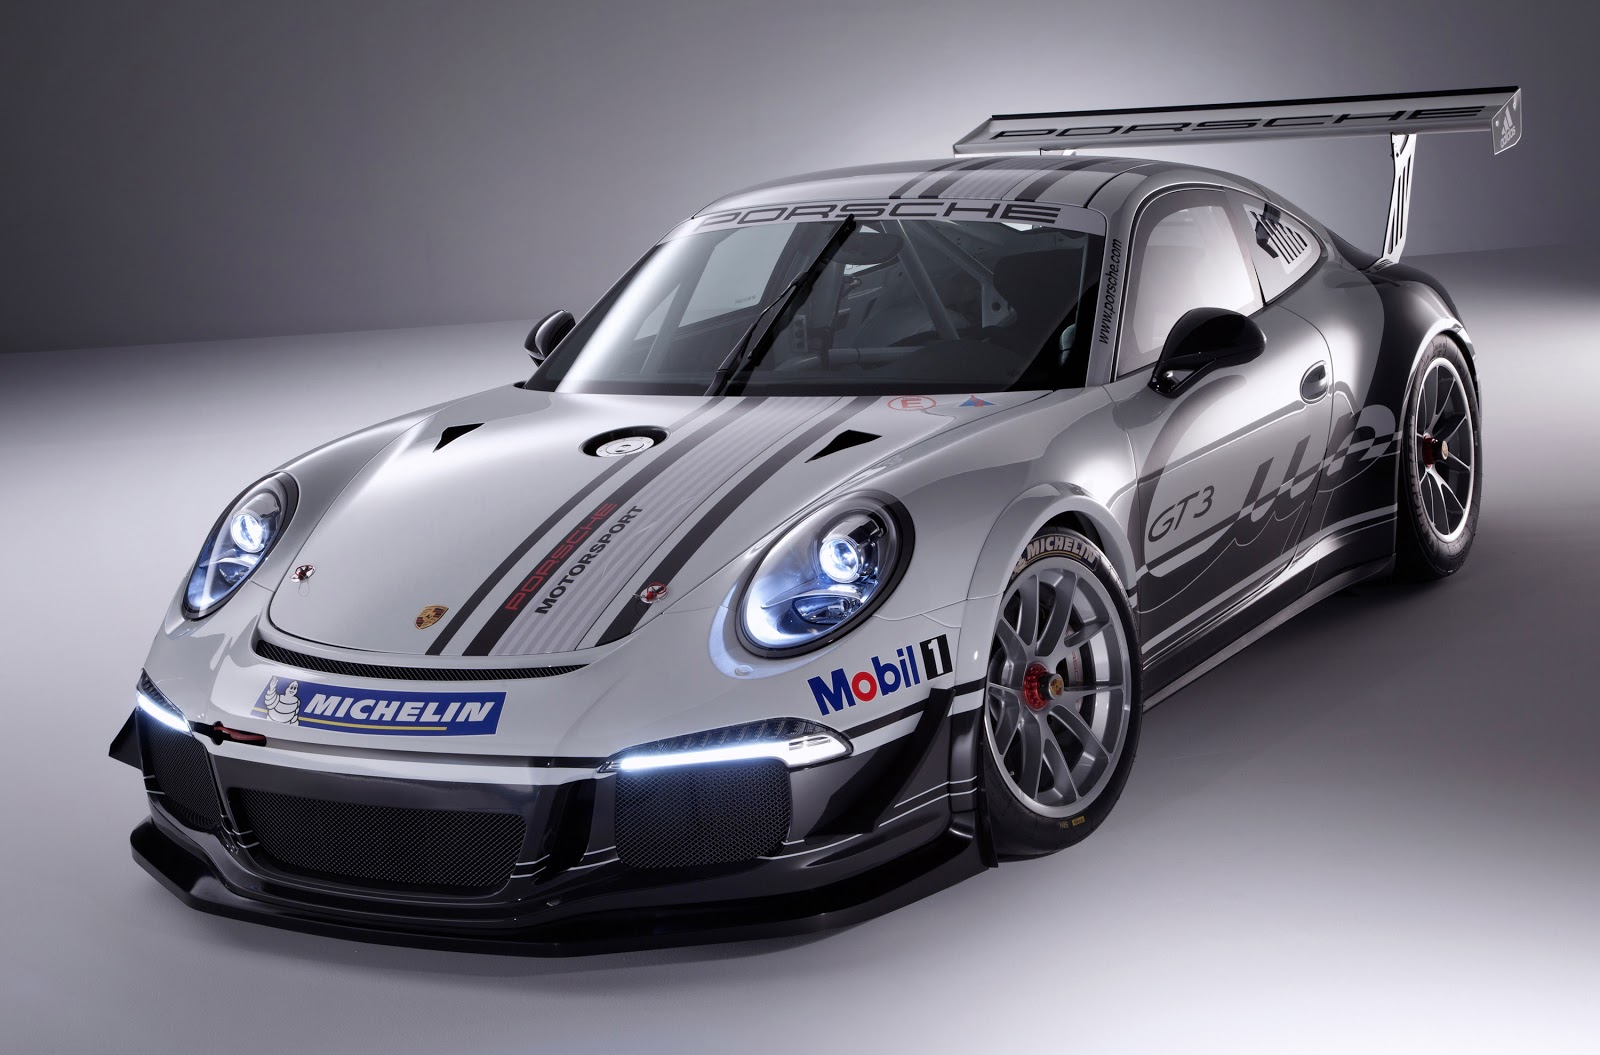 2013 Porsche 911 Gt3 Cup Race Car Automobile For Life